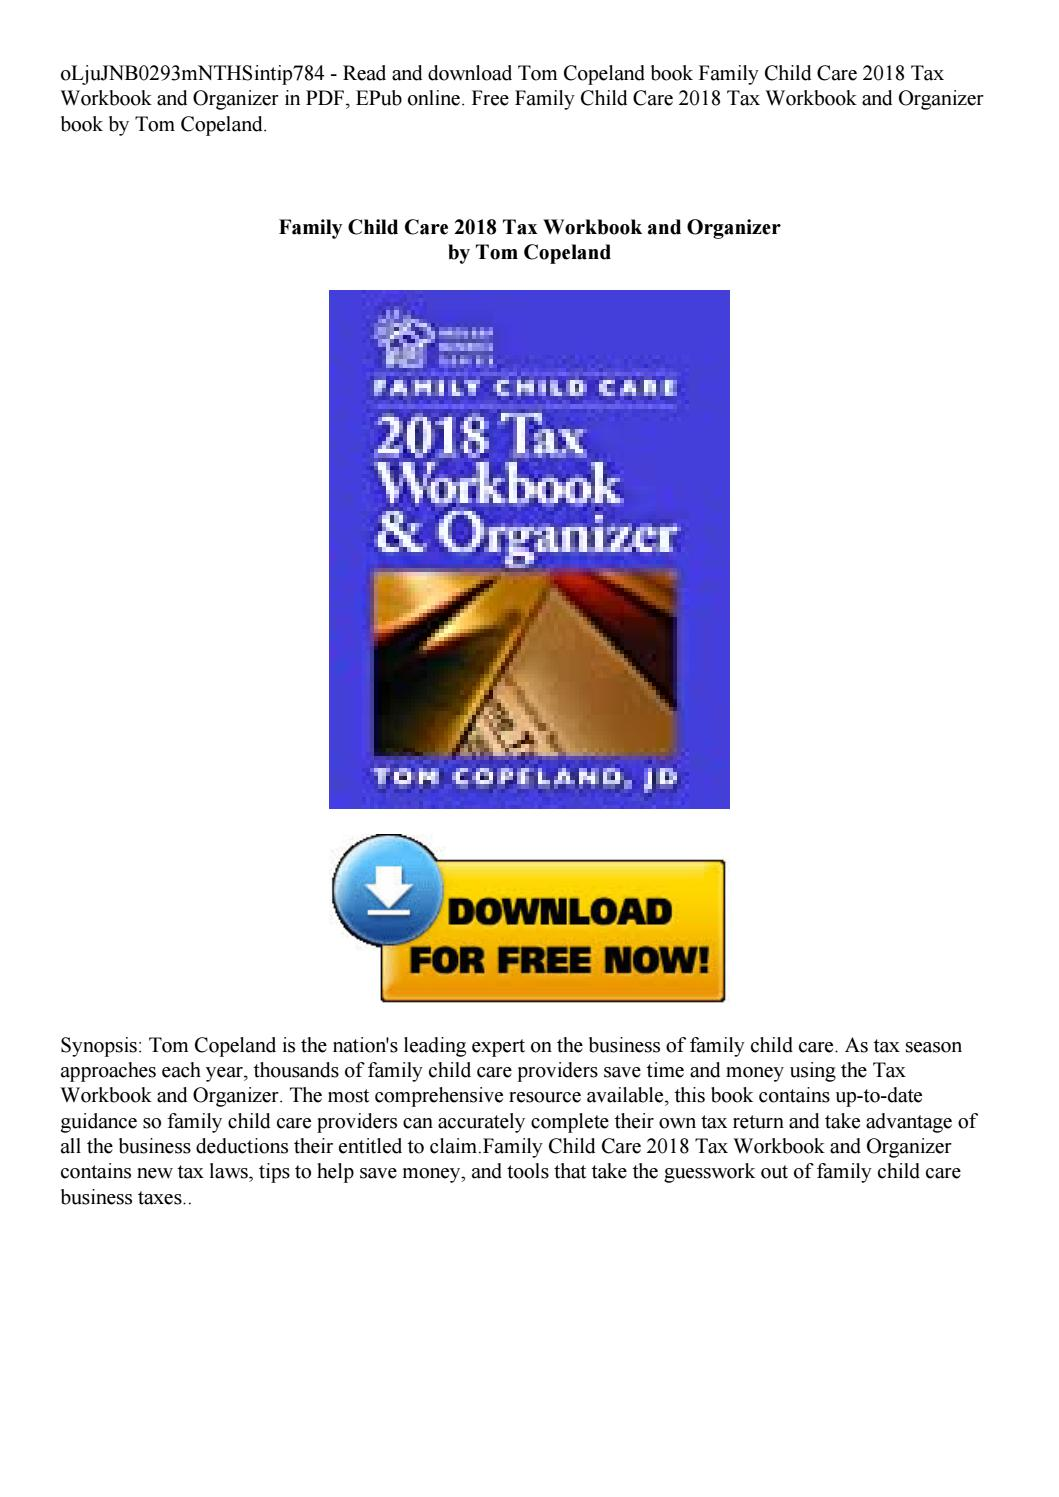 Family Child Care 2018 Tax Workbook And Organizer By Rotipisang27 - Online Tax Organizer